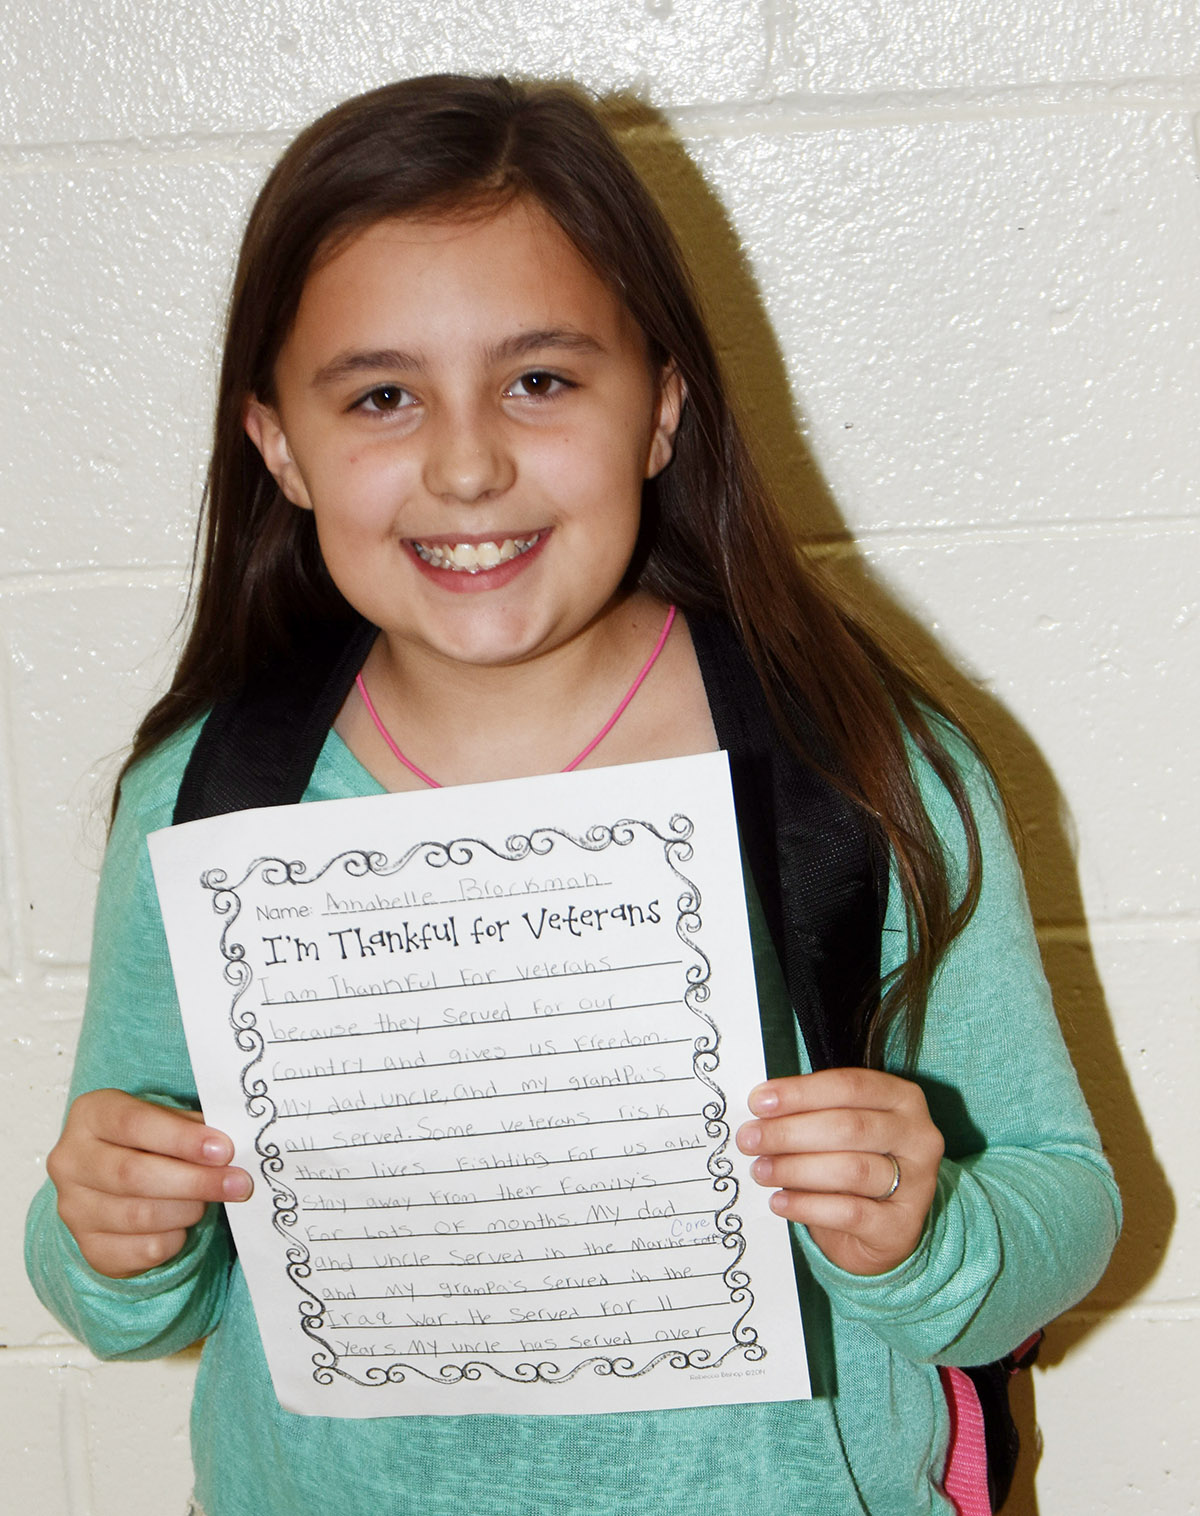 CES fourth-grader Annabelle Brockman was named Writer of the Week for the week of Nov. 12.